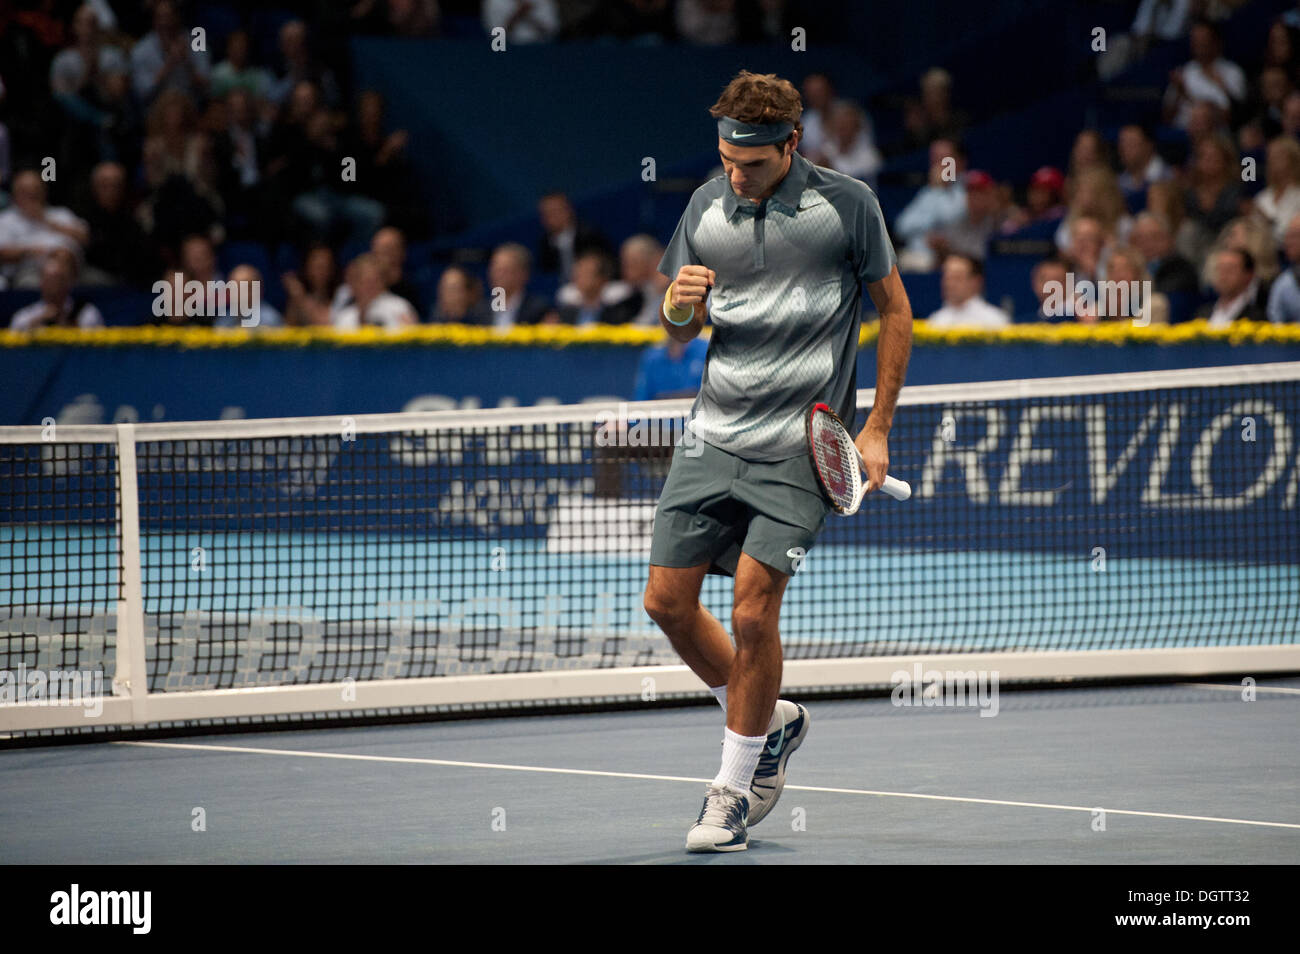 Basel, Switzerland. 25th Oct, 2013. Roger Federer (SUI) cheers during match of the quarter finals of the Swiss Indoors at St. Jakobshalle on Friday. Photo: Miroslav Dakov/ Alamy Live News - Stock Image